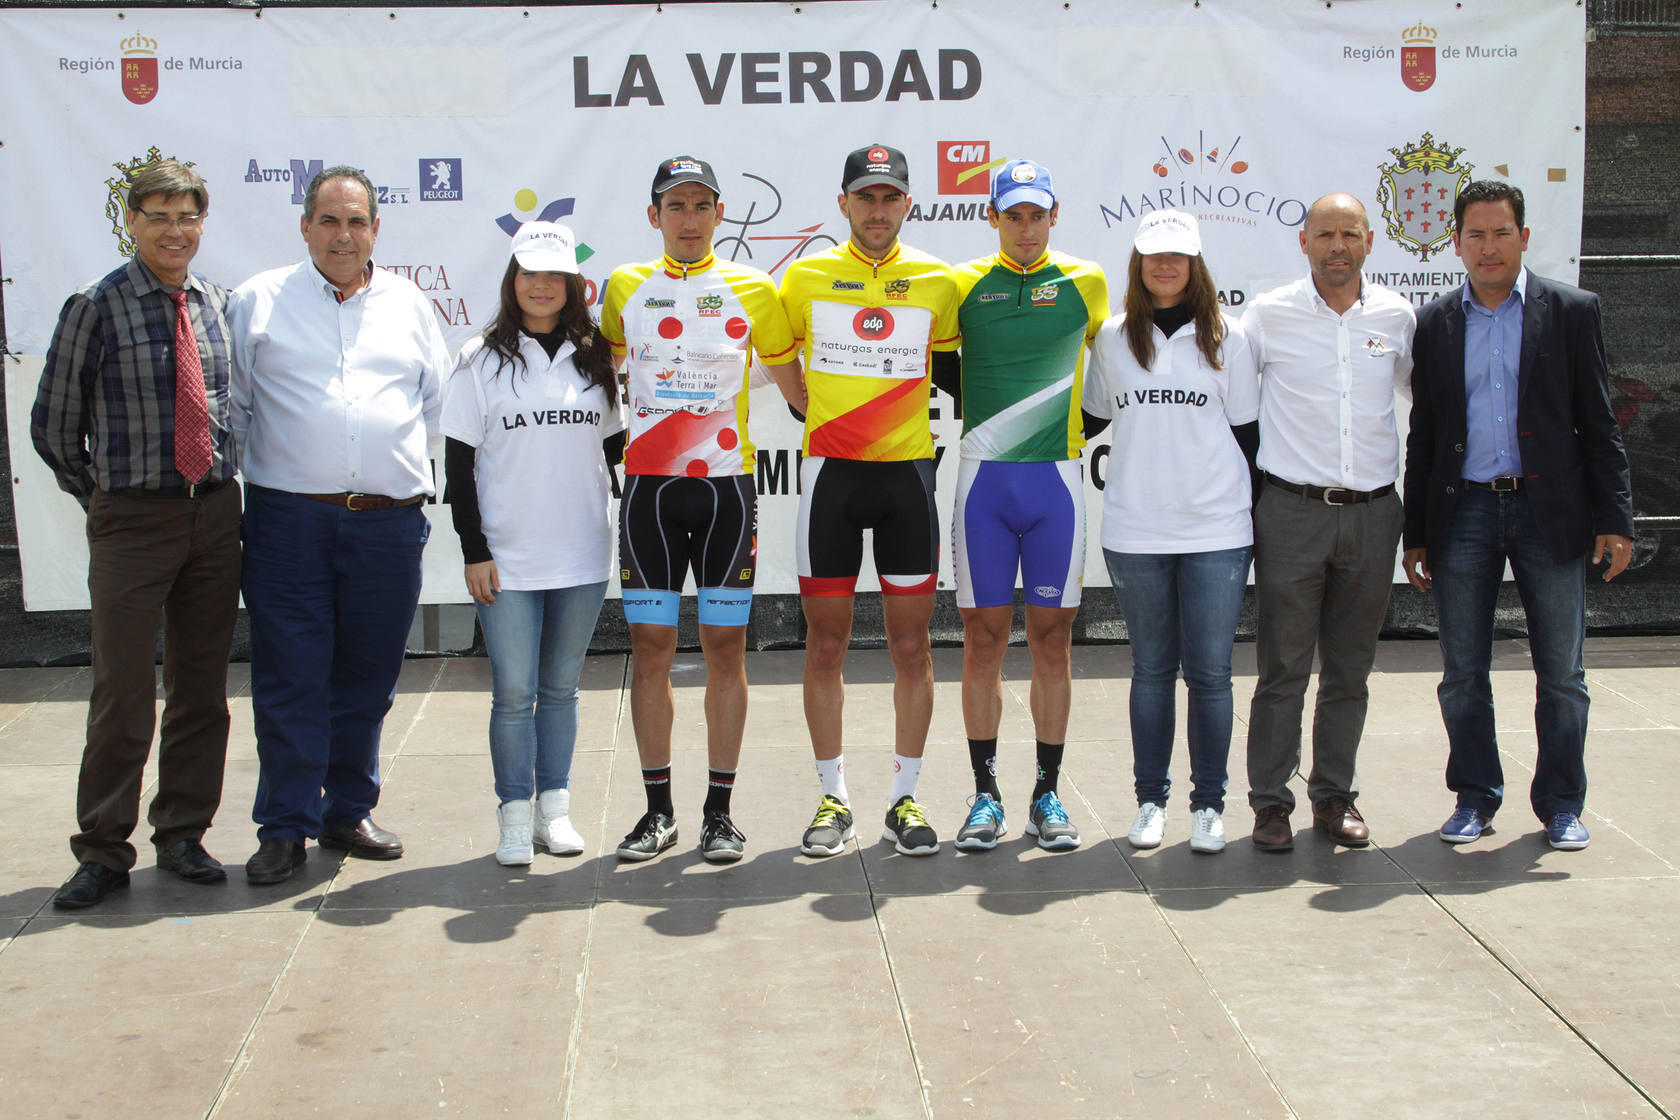 La fiesta del ciclismo toma Alcantarilla